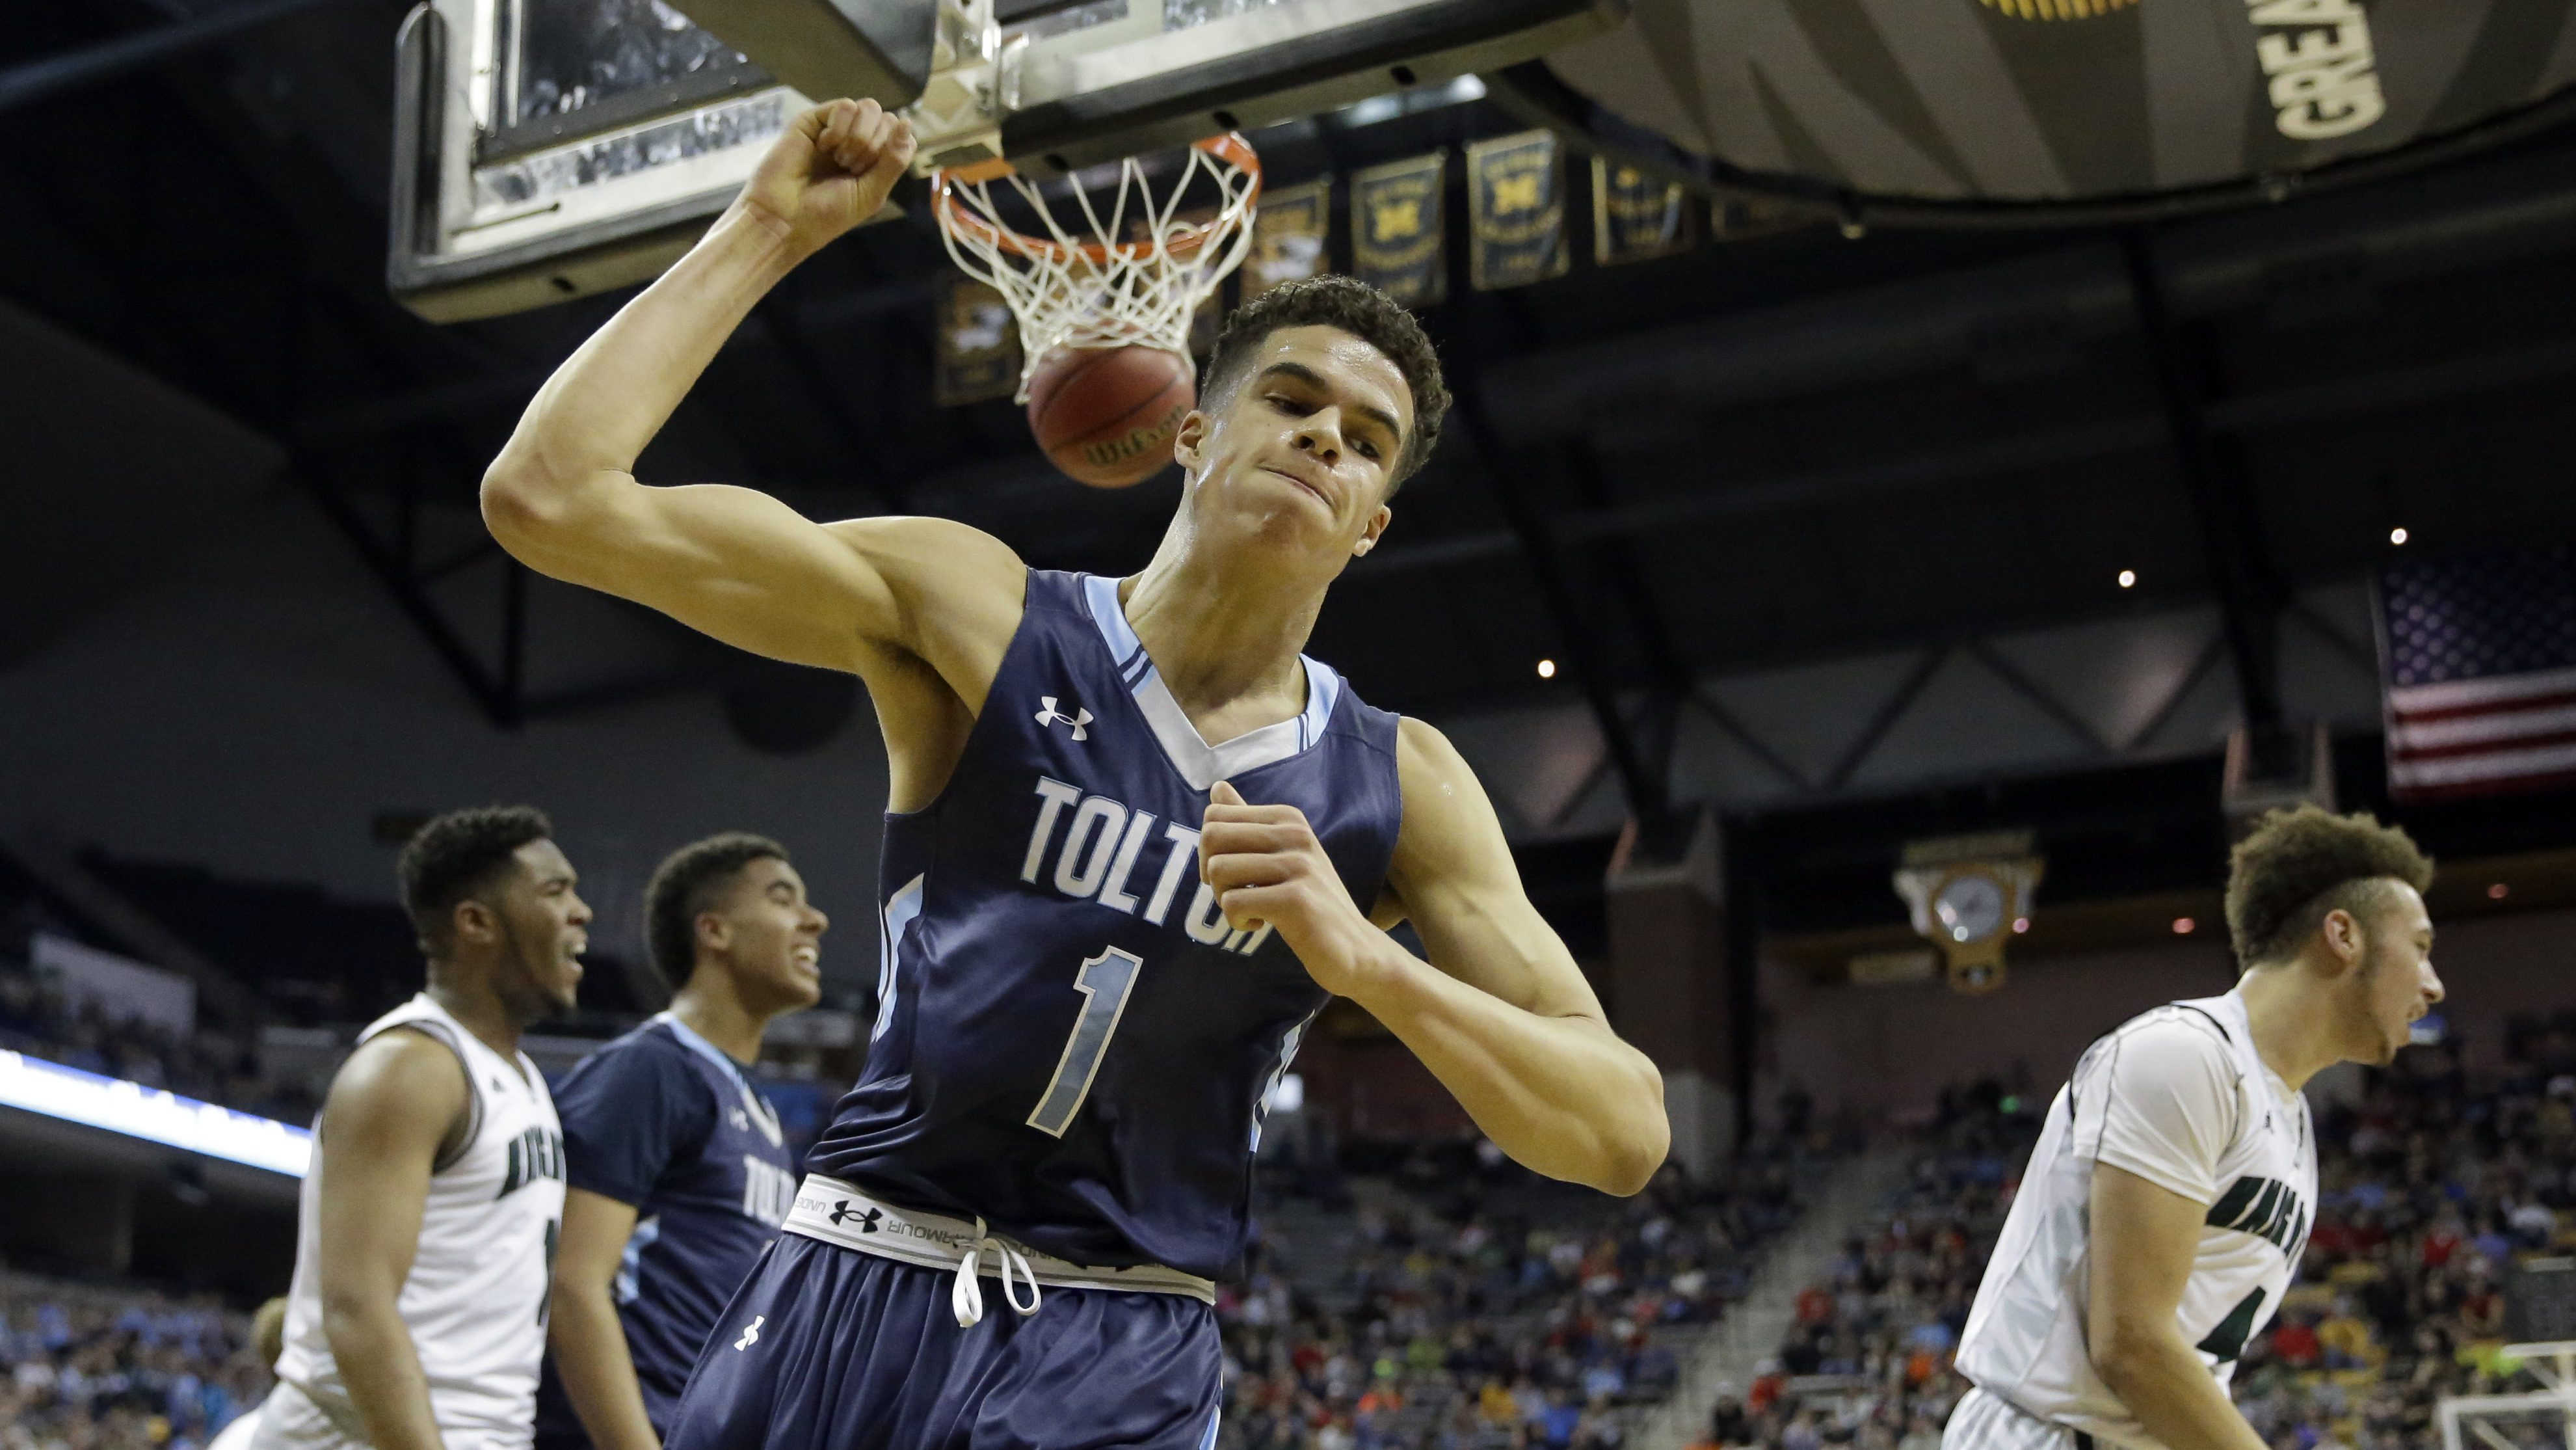 Father Tolton Catholic's Michael Porter, Jr. (1) celebrates after sinking a basket and drawing a foul during the first half of the Missouri Class 3 boys high school championship basketball game against the Barstow Saturday, March 12, 2016, in Columbia, Mo. (AP Photo/Jeff Roberson)